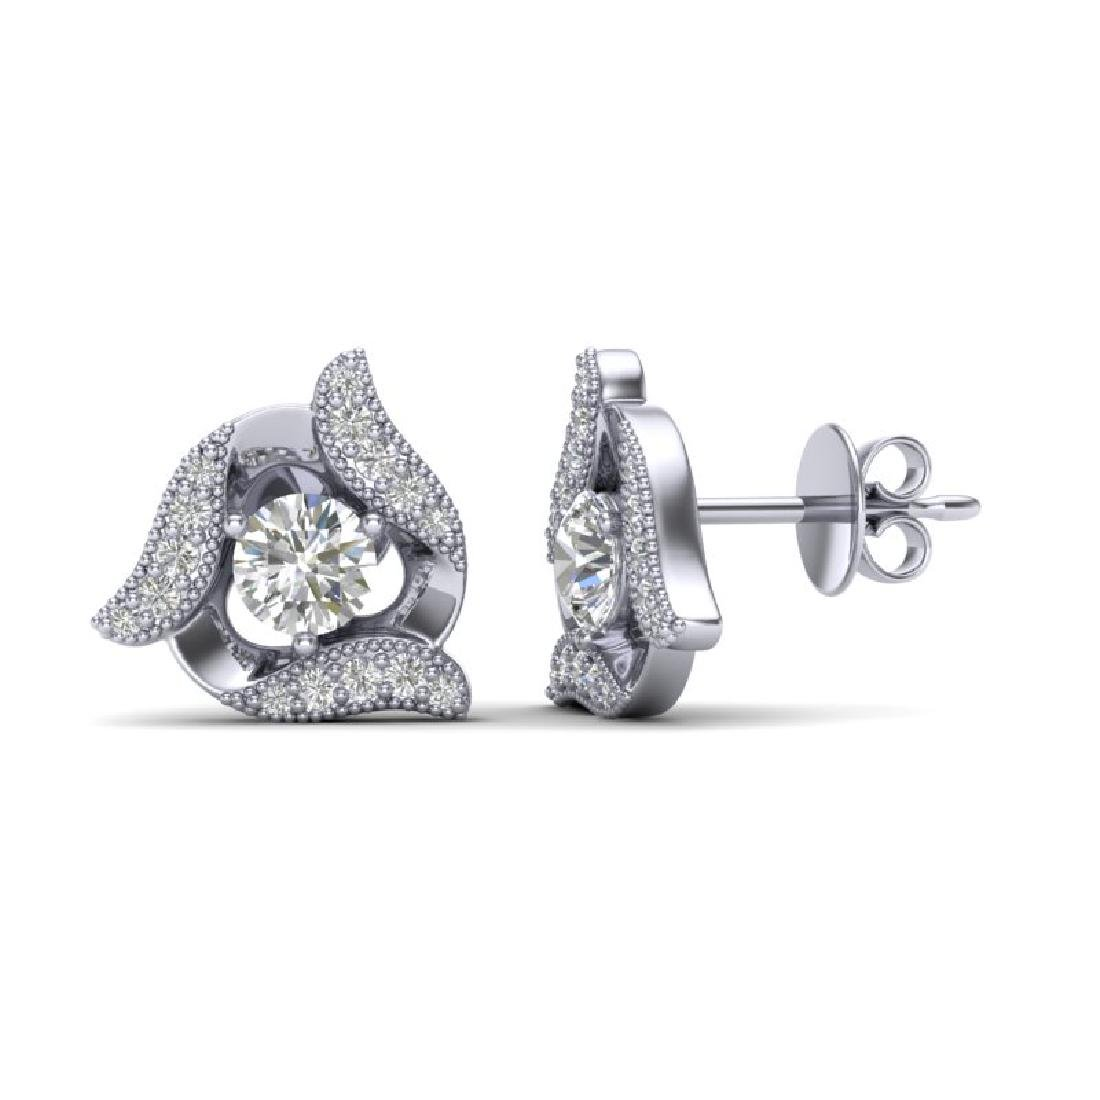 0.76 CTW Micro Pave VS/SI Diamond Halo Earrings 18K - 2